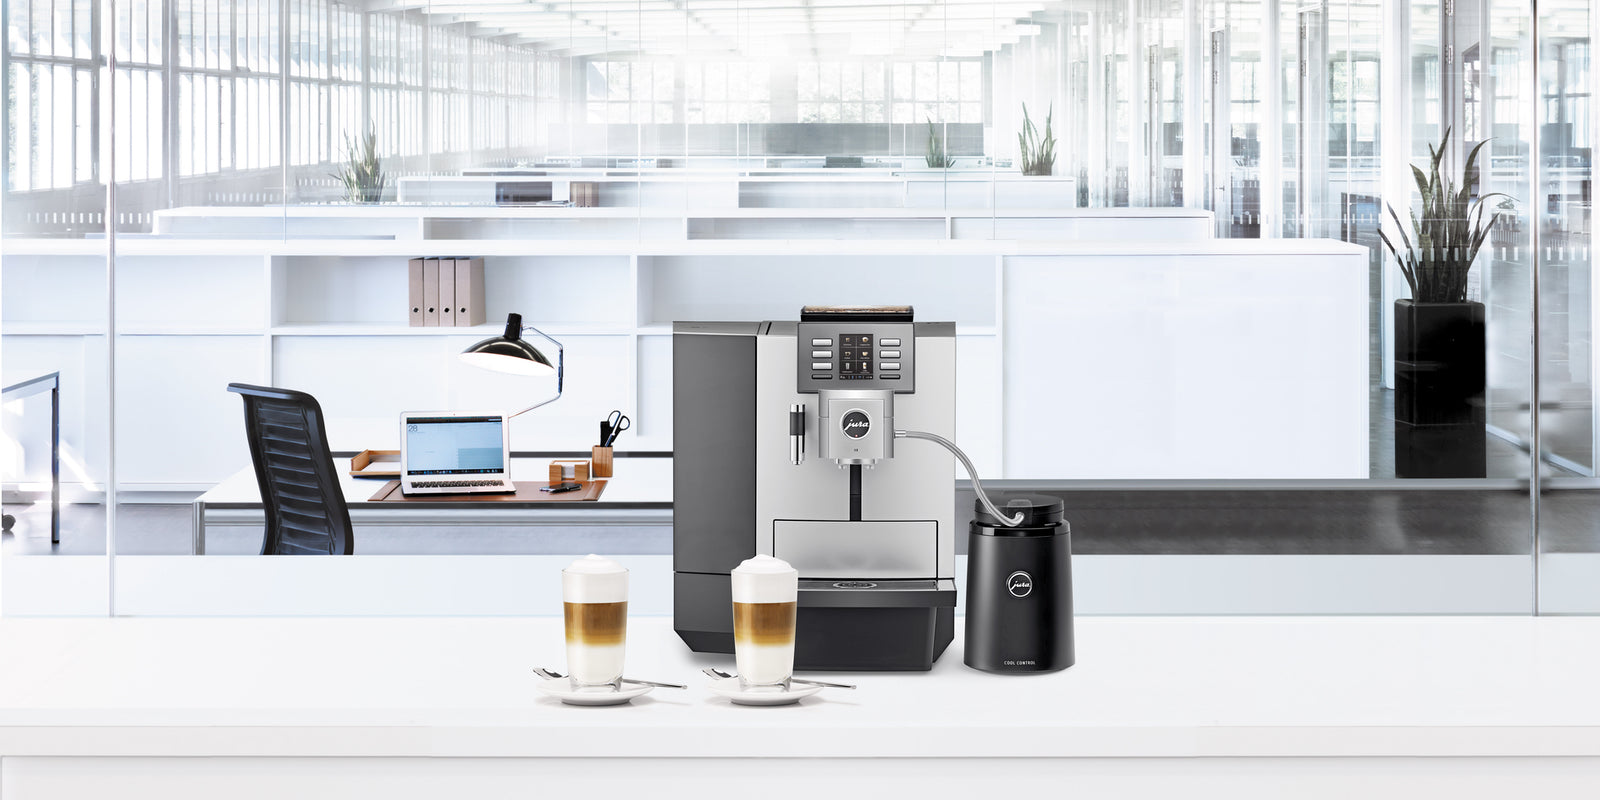 JURA Professional Line of Coffee Machine available from Espresso Canada